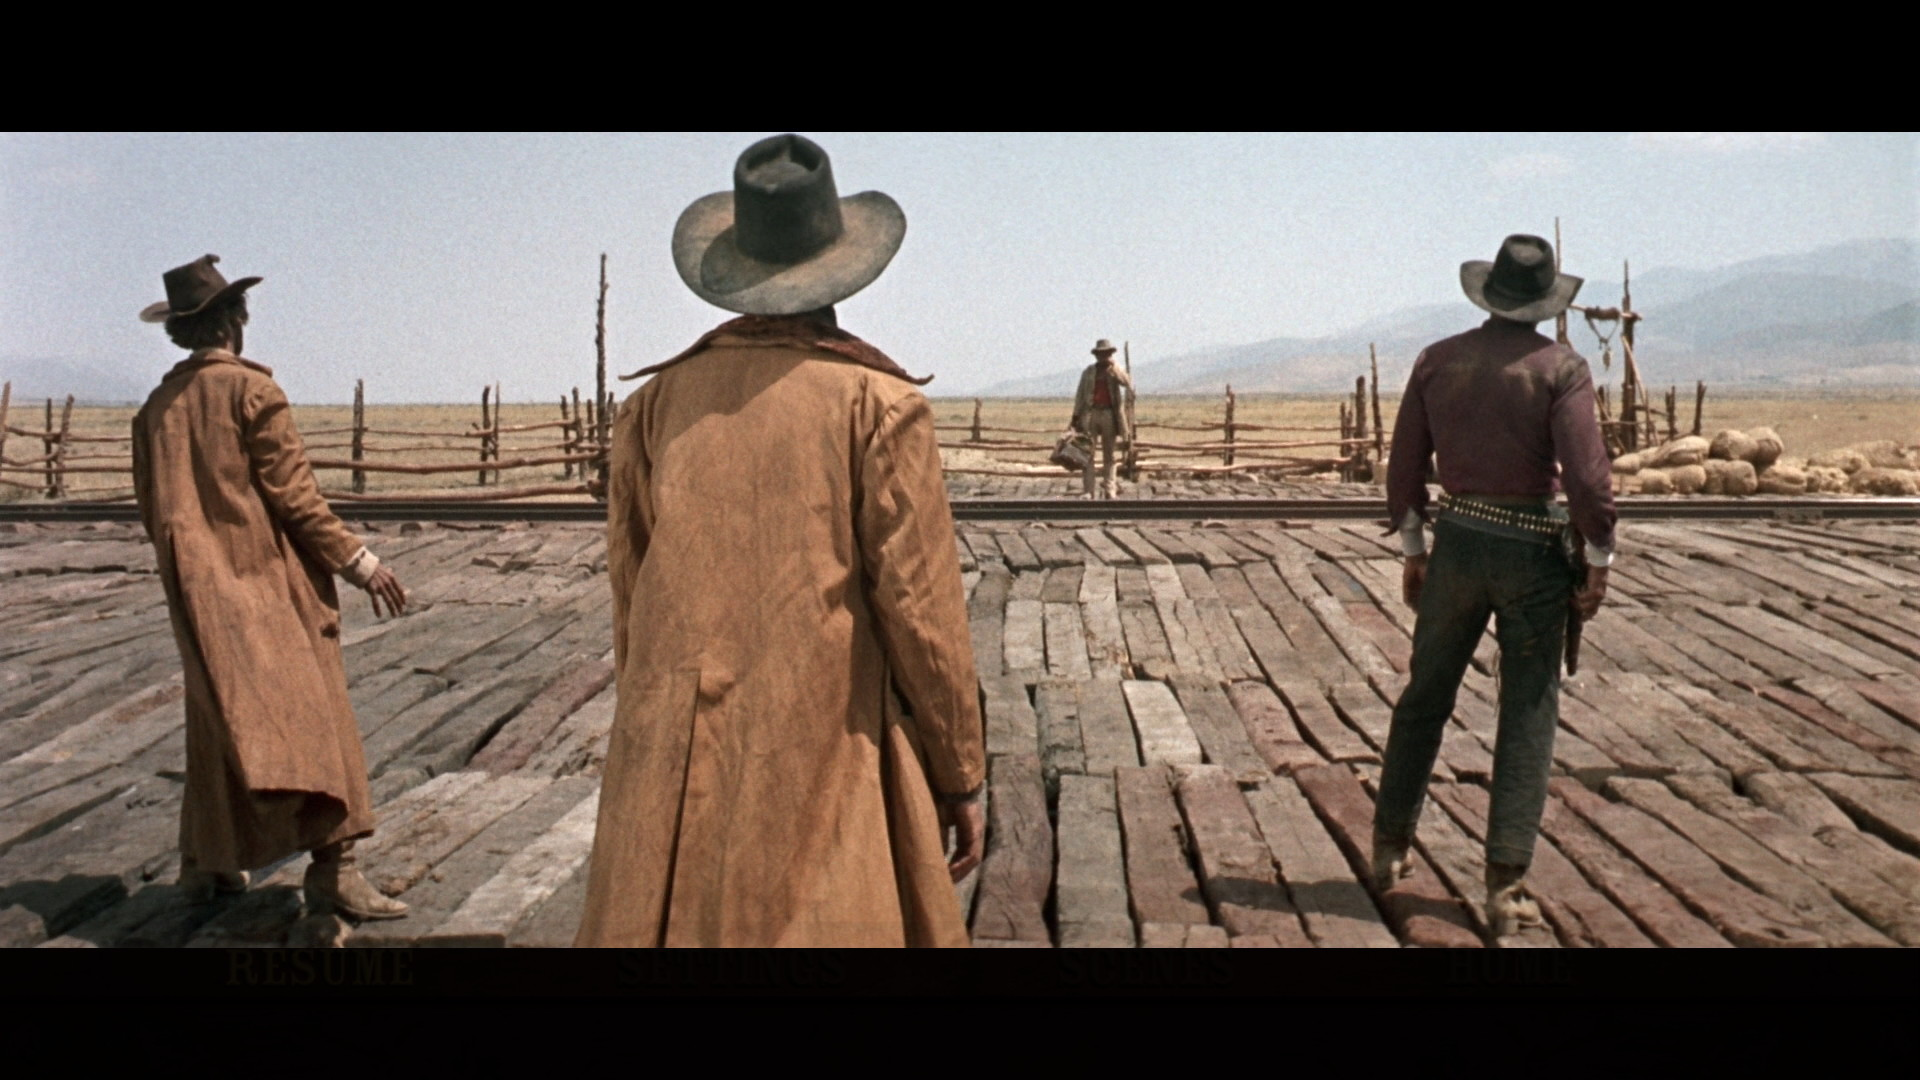 Res: 1920x1080, western movie wallpaper western cowboy wallpaper 1